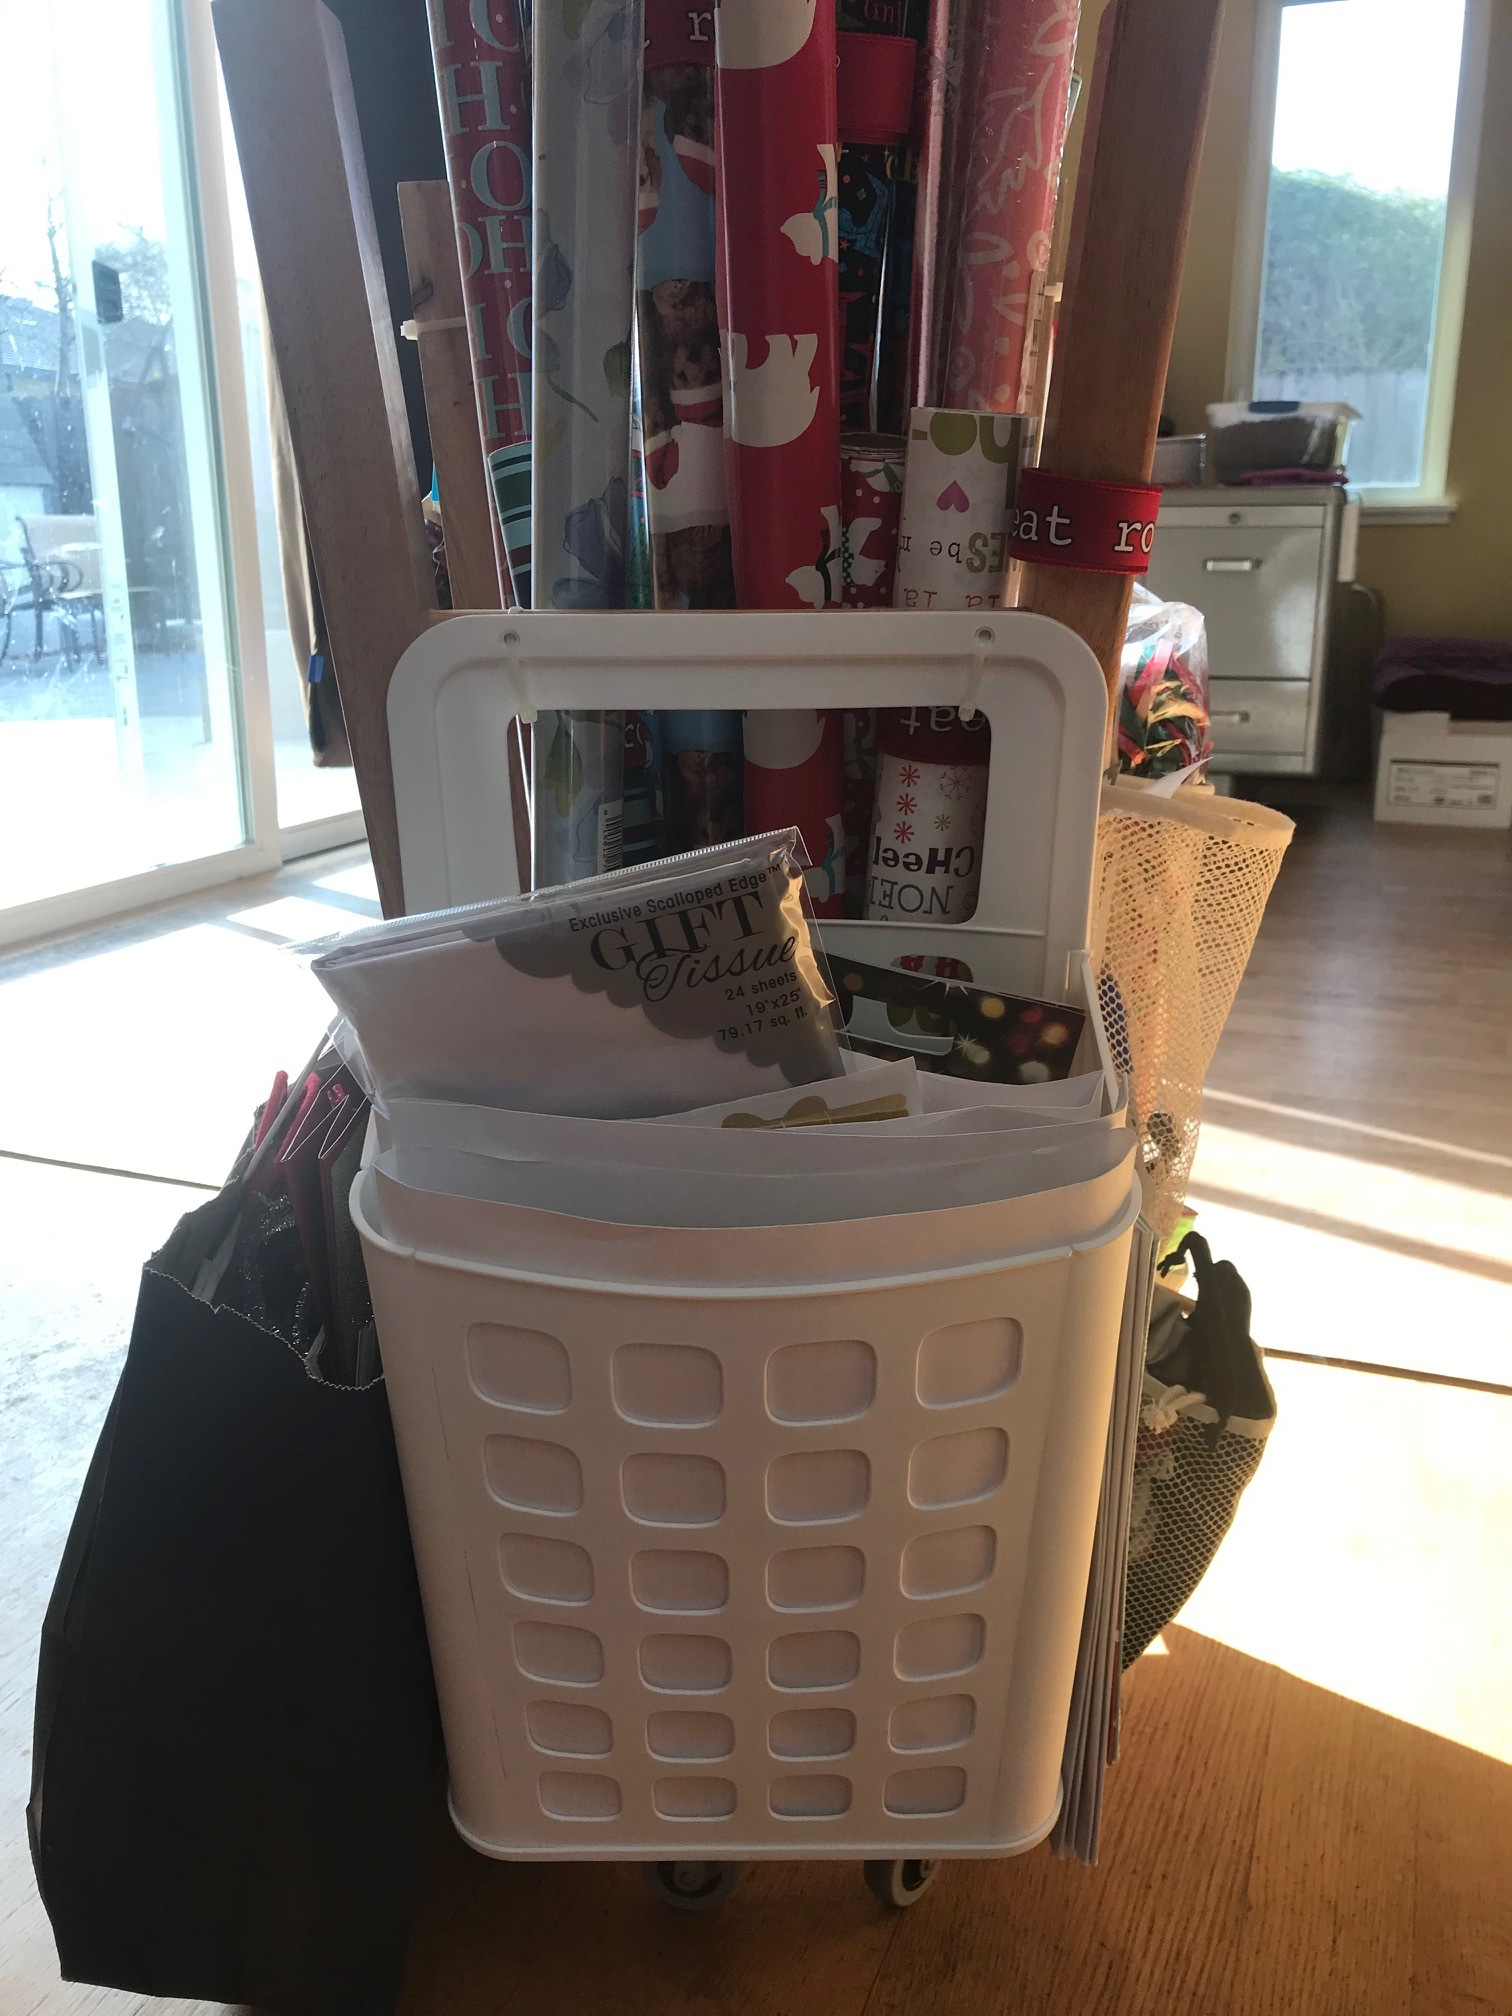 This is a plastic hanging organizer I bought from IKEA that is intended to hold plastic bags for recycling. I'm using it to hold flat items such as flat gift-wrap, tissue paper, labels and smaller gift bags.